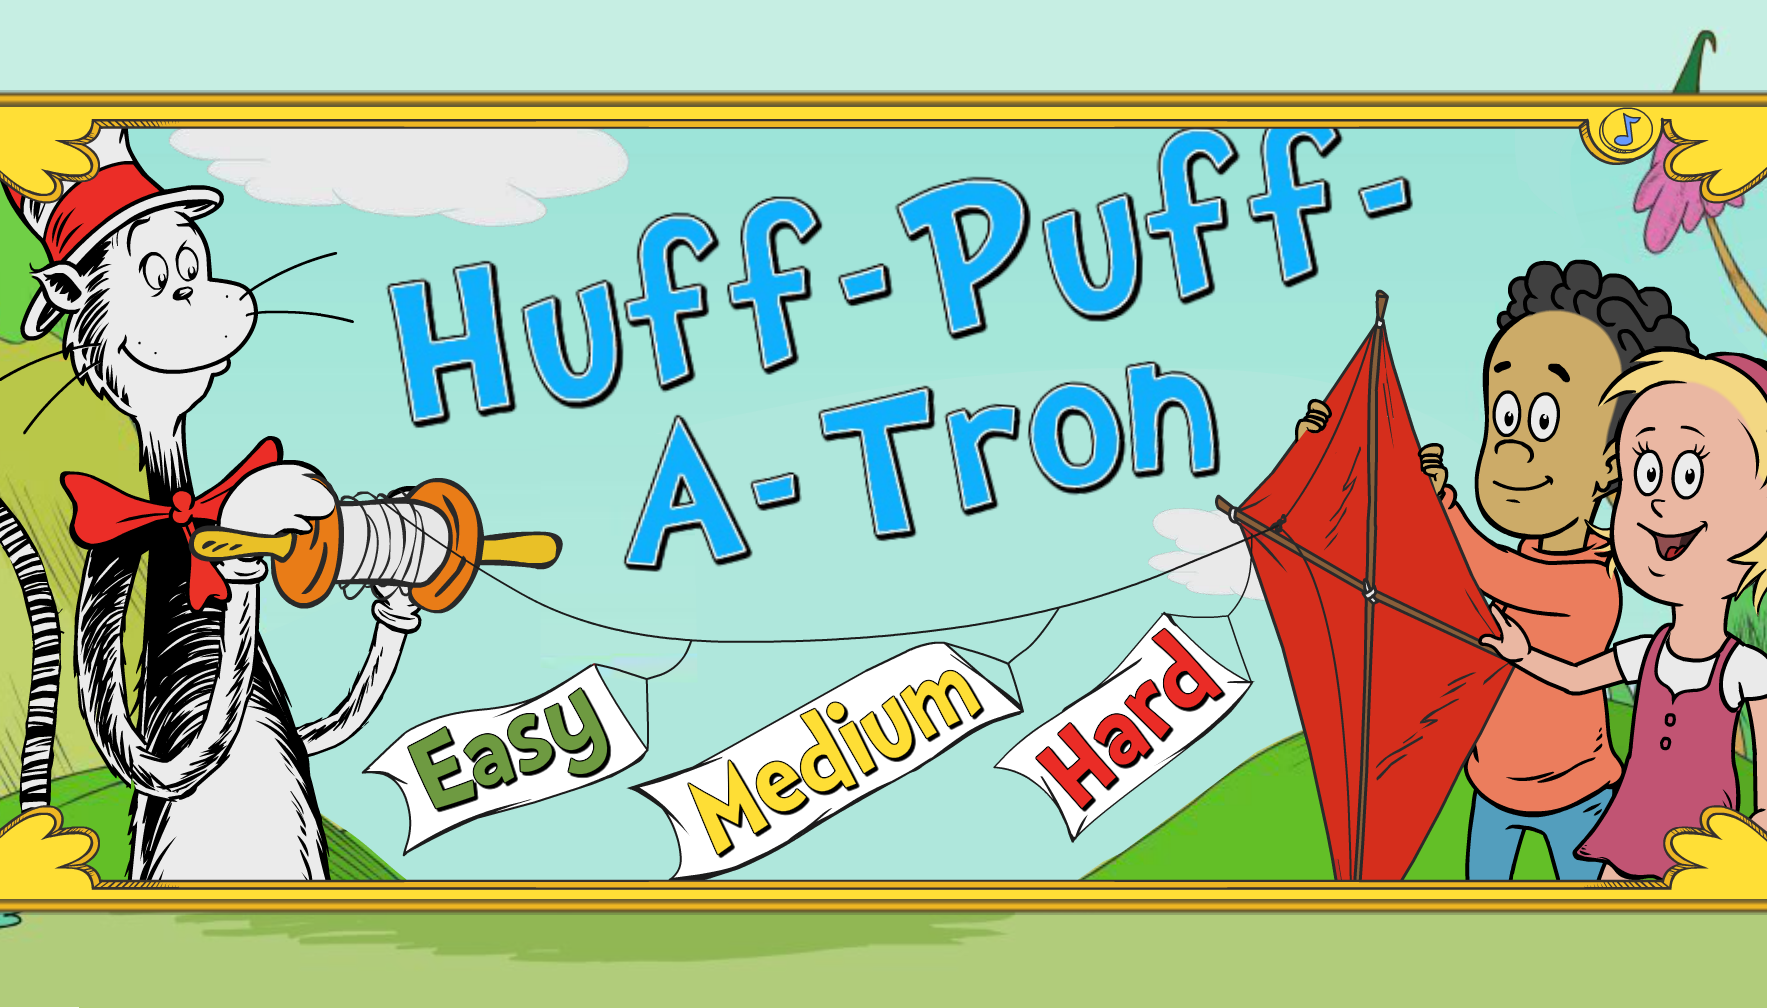 Huff-Puff-a-Tron | Cat in the Hat